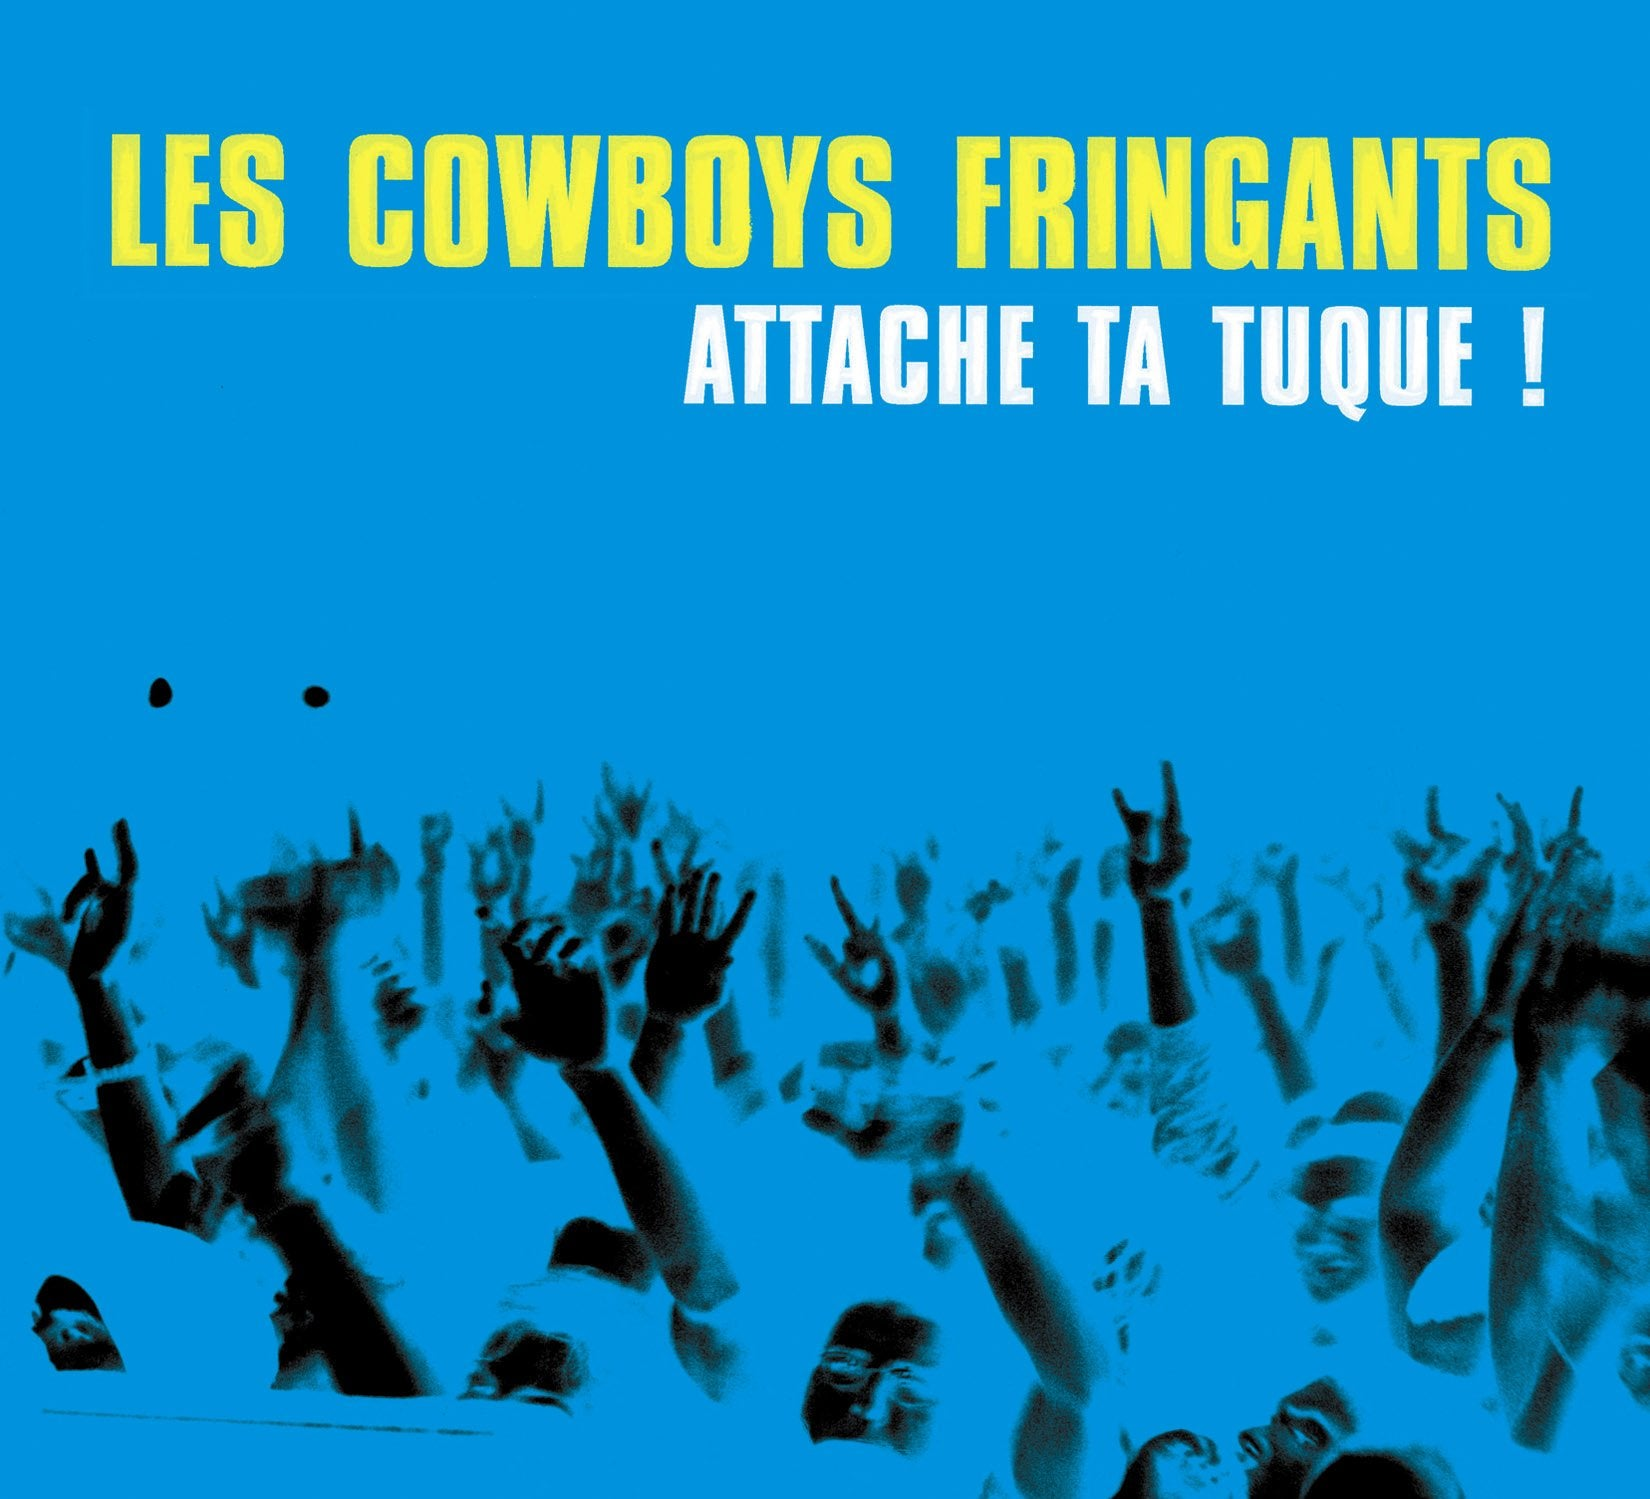 CD – Les Cowboys Fringants – Attache ta tuque! – TRICD7213